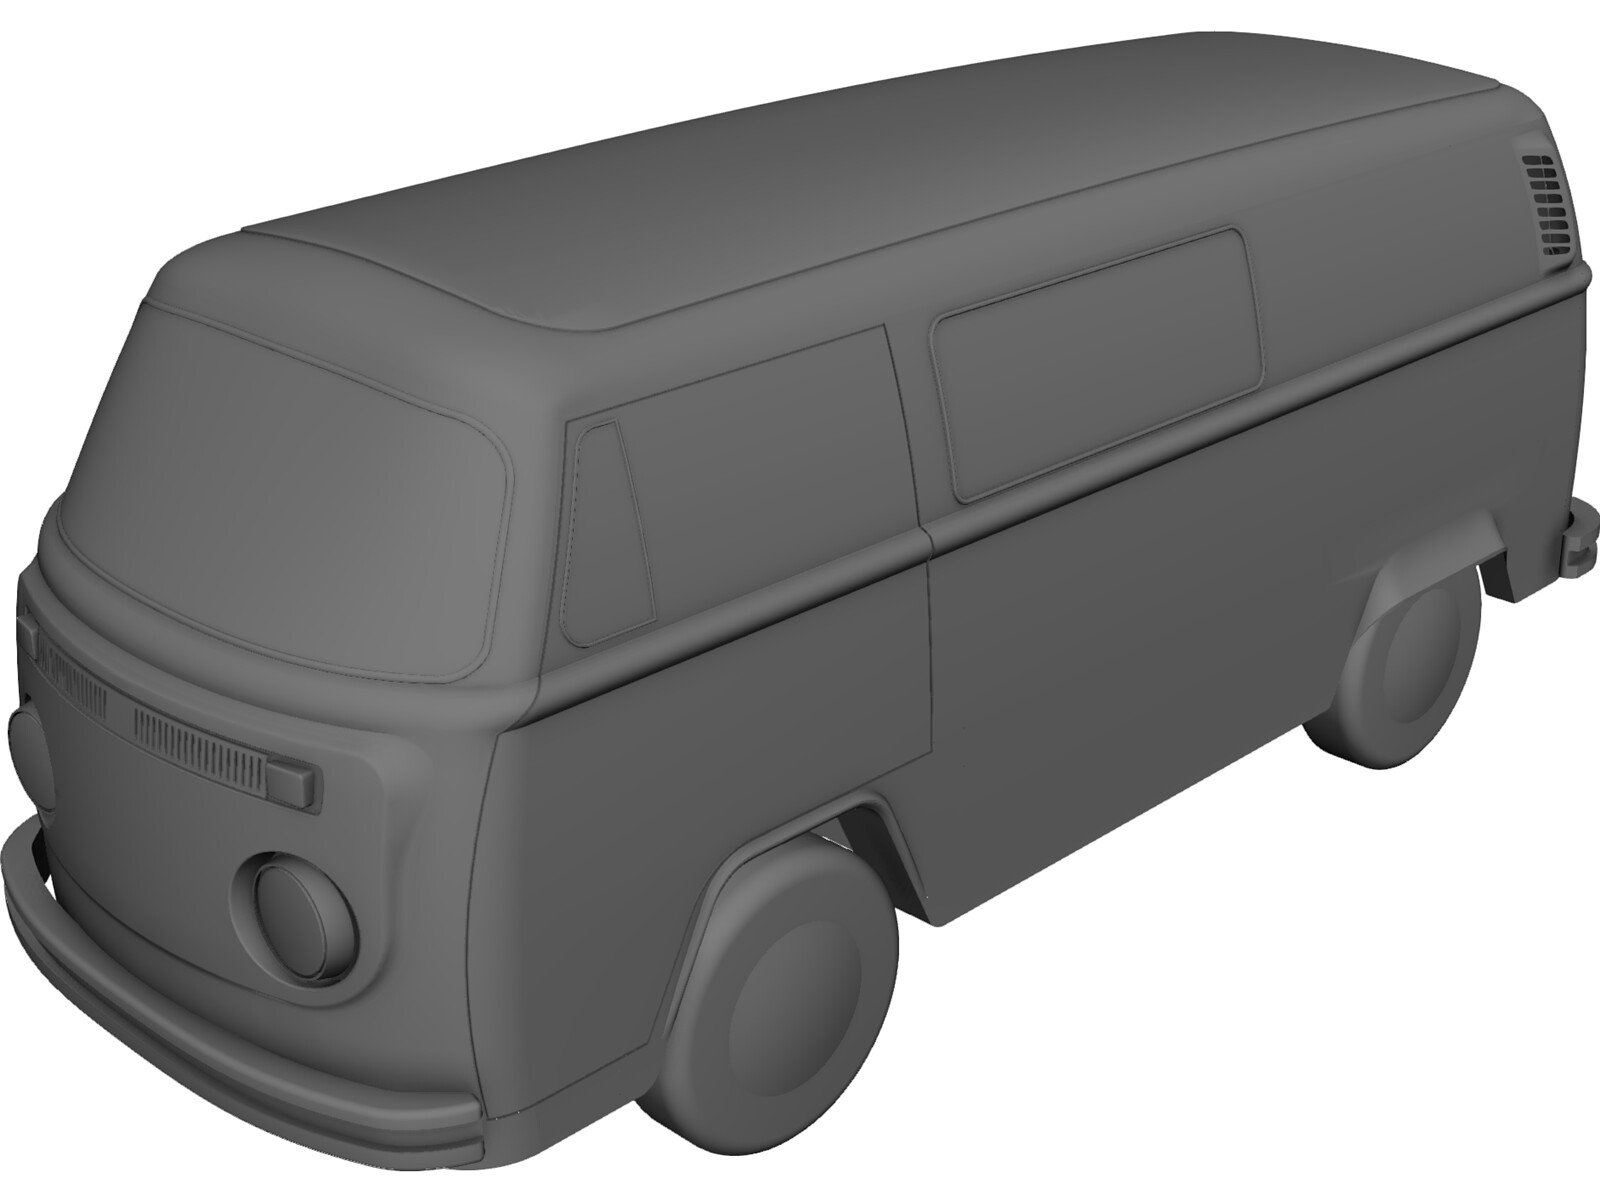 Volkswagen T2b 3d Cad Model Download 3d Cad Browser